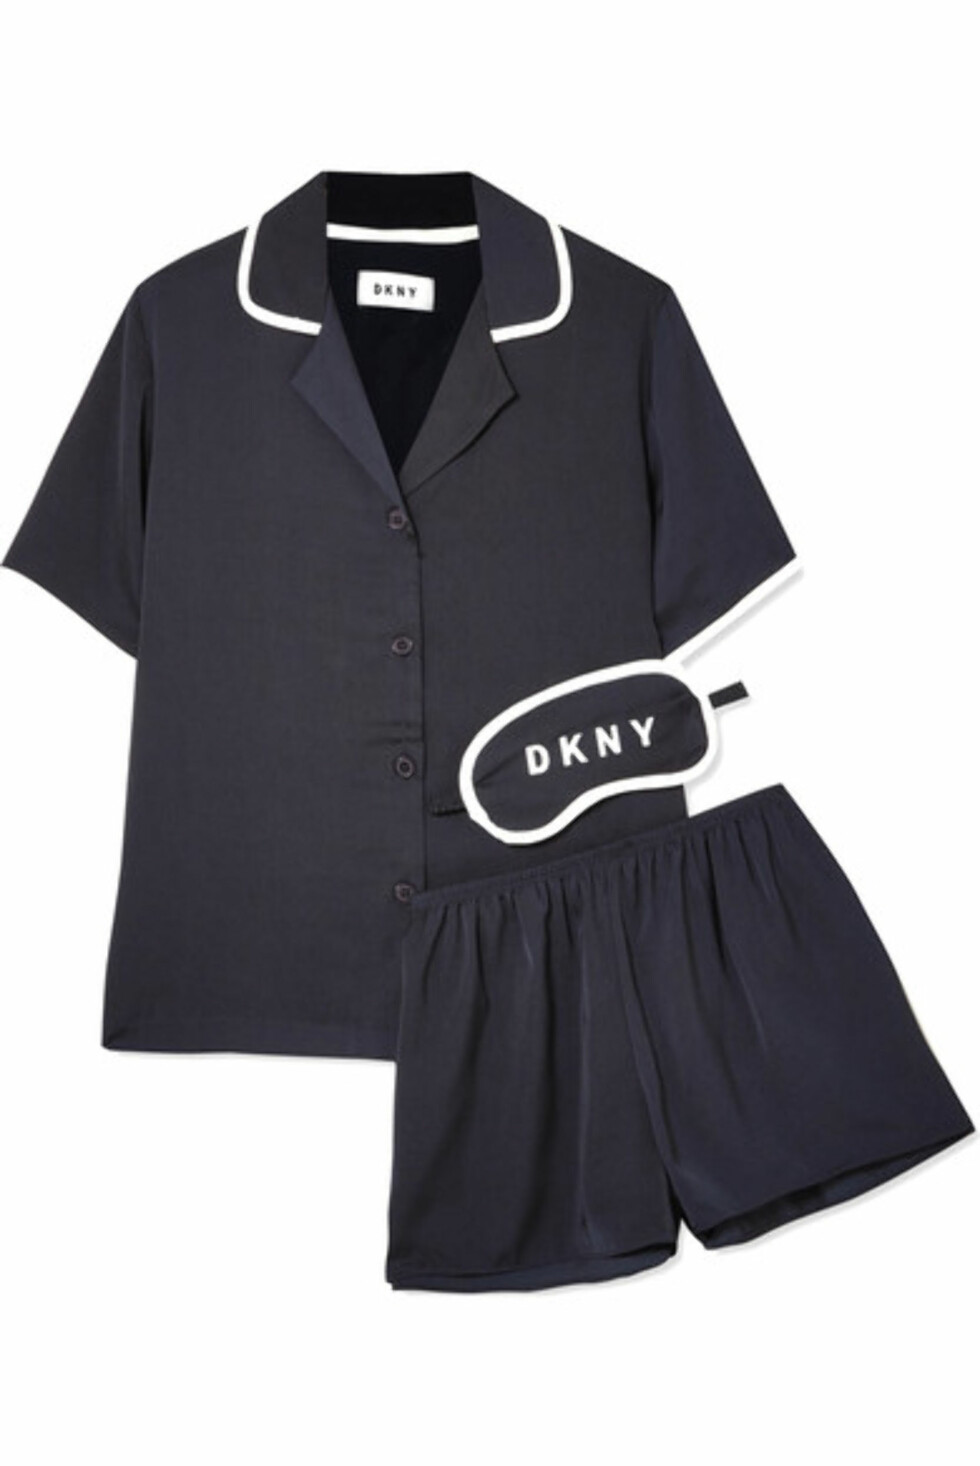 Pysj fra DKNY via Net-a-porter.com |730,-| https://www.net-a-porter.com/no/en/product/975103/DKNY/never-sleeps-washed-satin-pajama-set